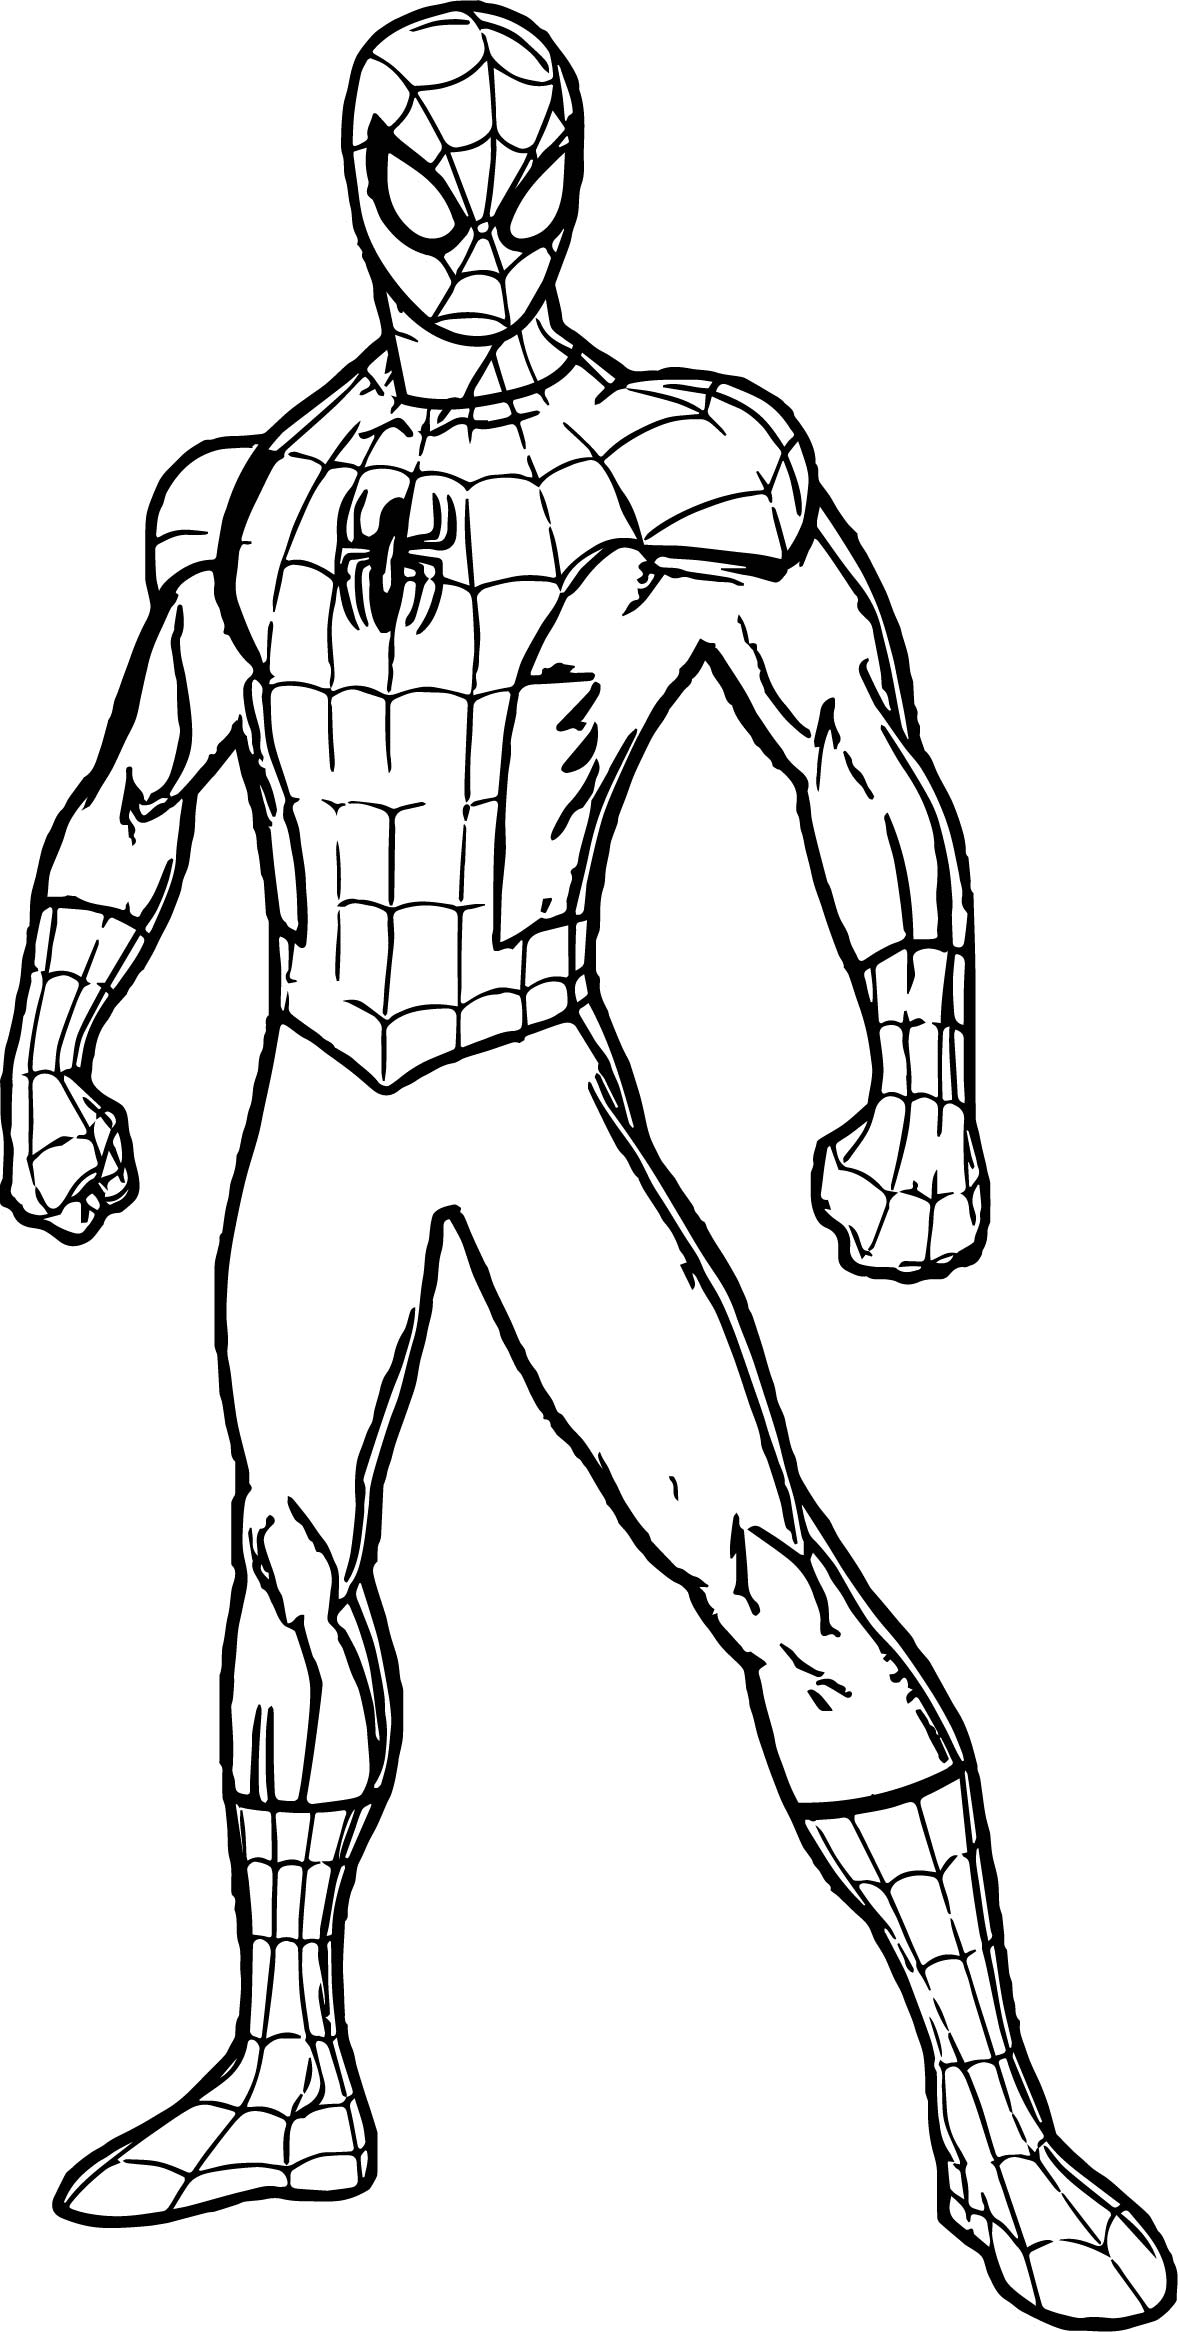 spiderman outline pictures spiderman outline drawing at getdrawings free download pictures outline spiderman